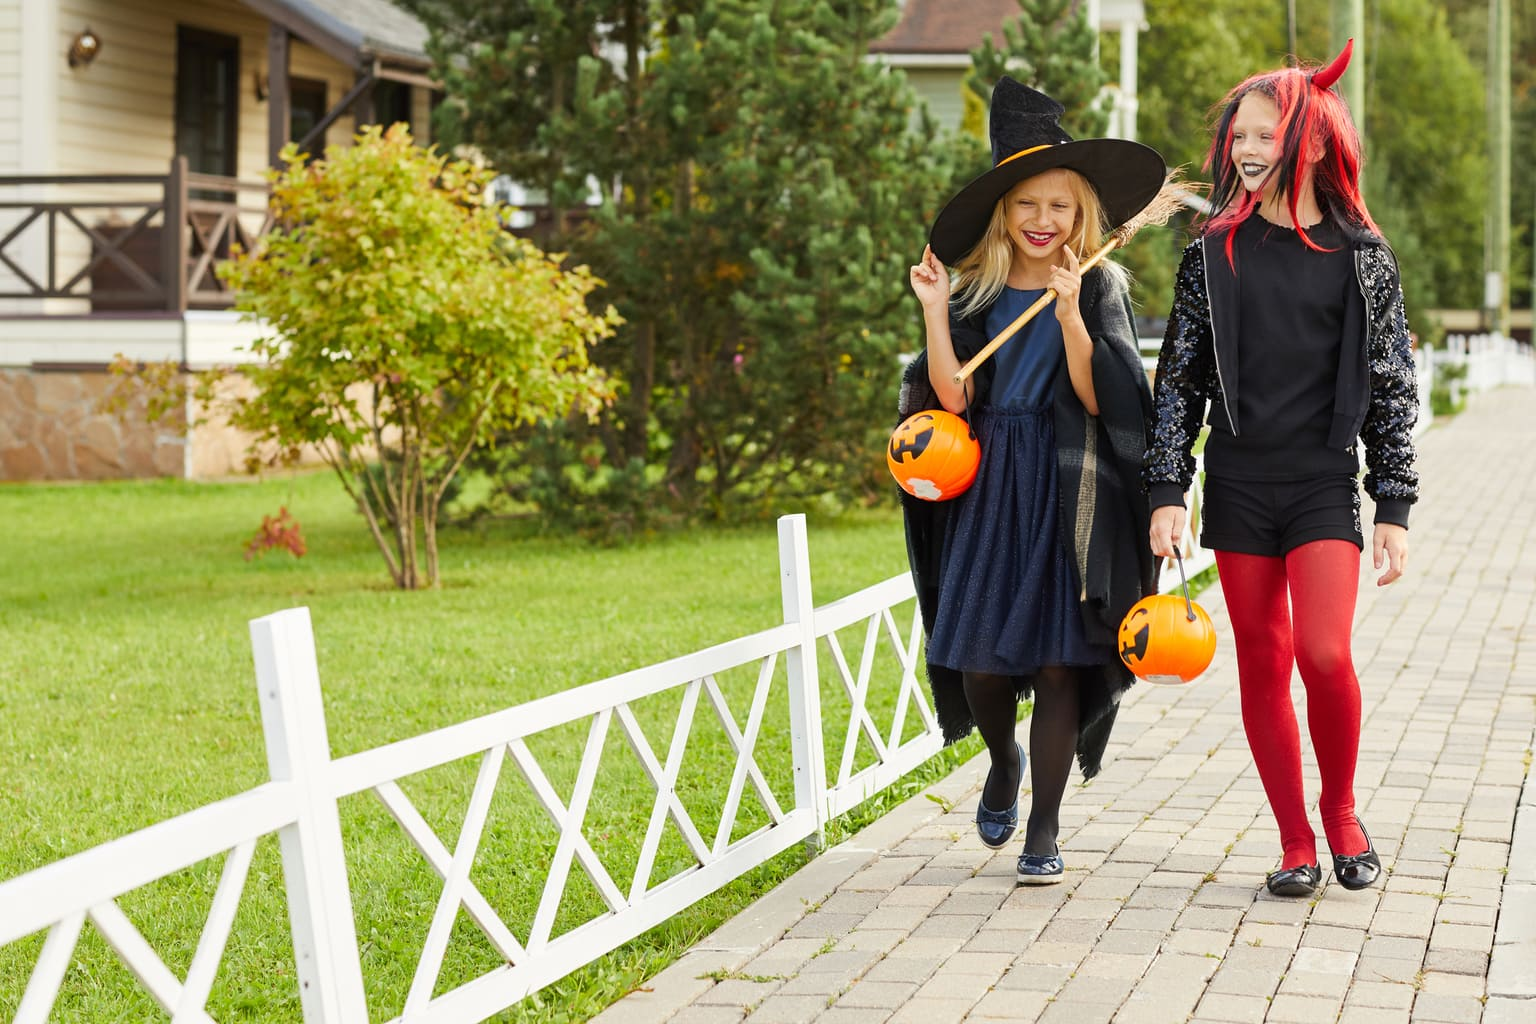 teens are trick or treating - how to keep them safe